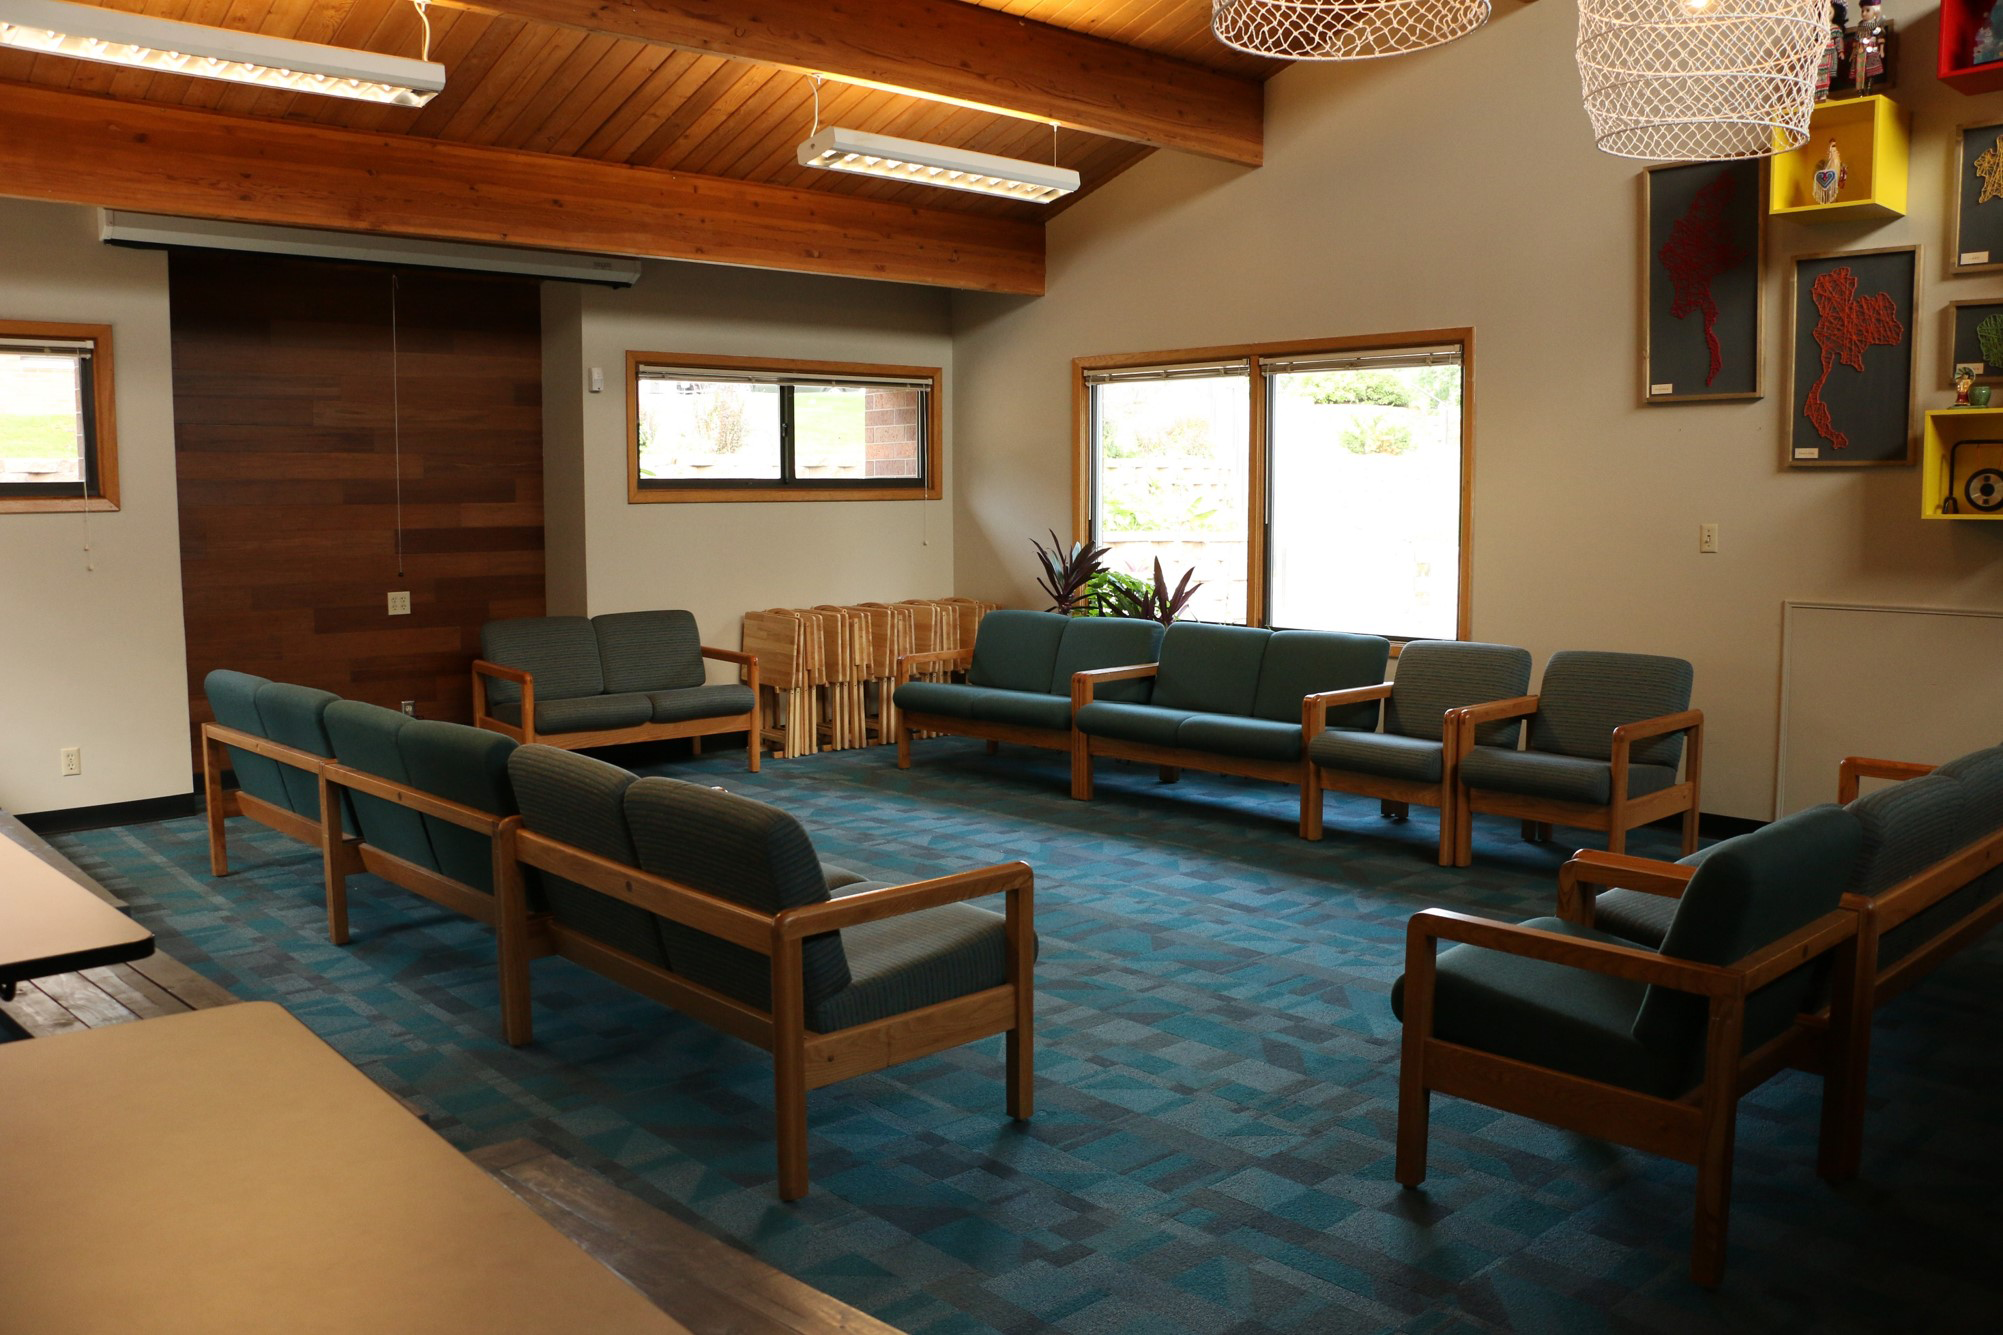 Transformed gathering space at Wilder Center for Social Healing